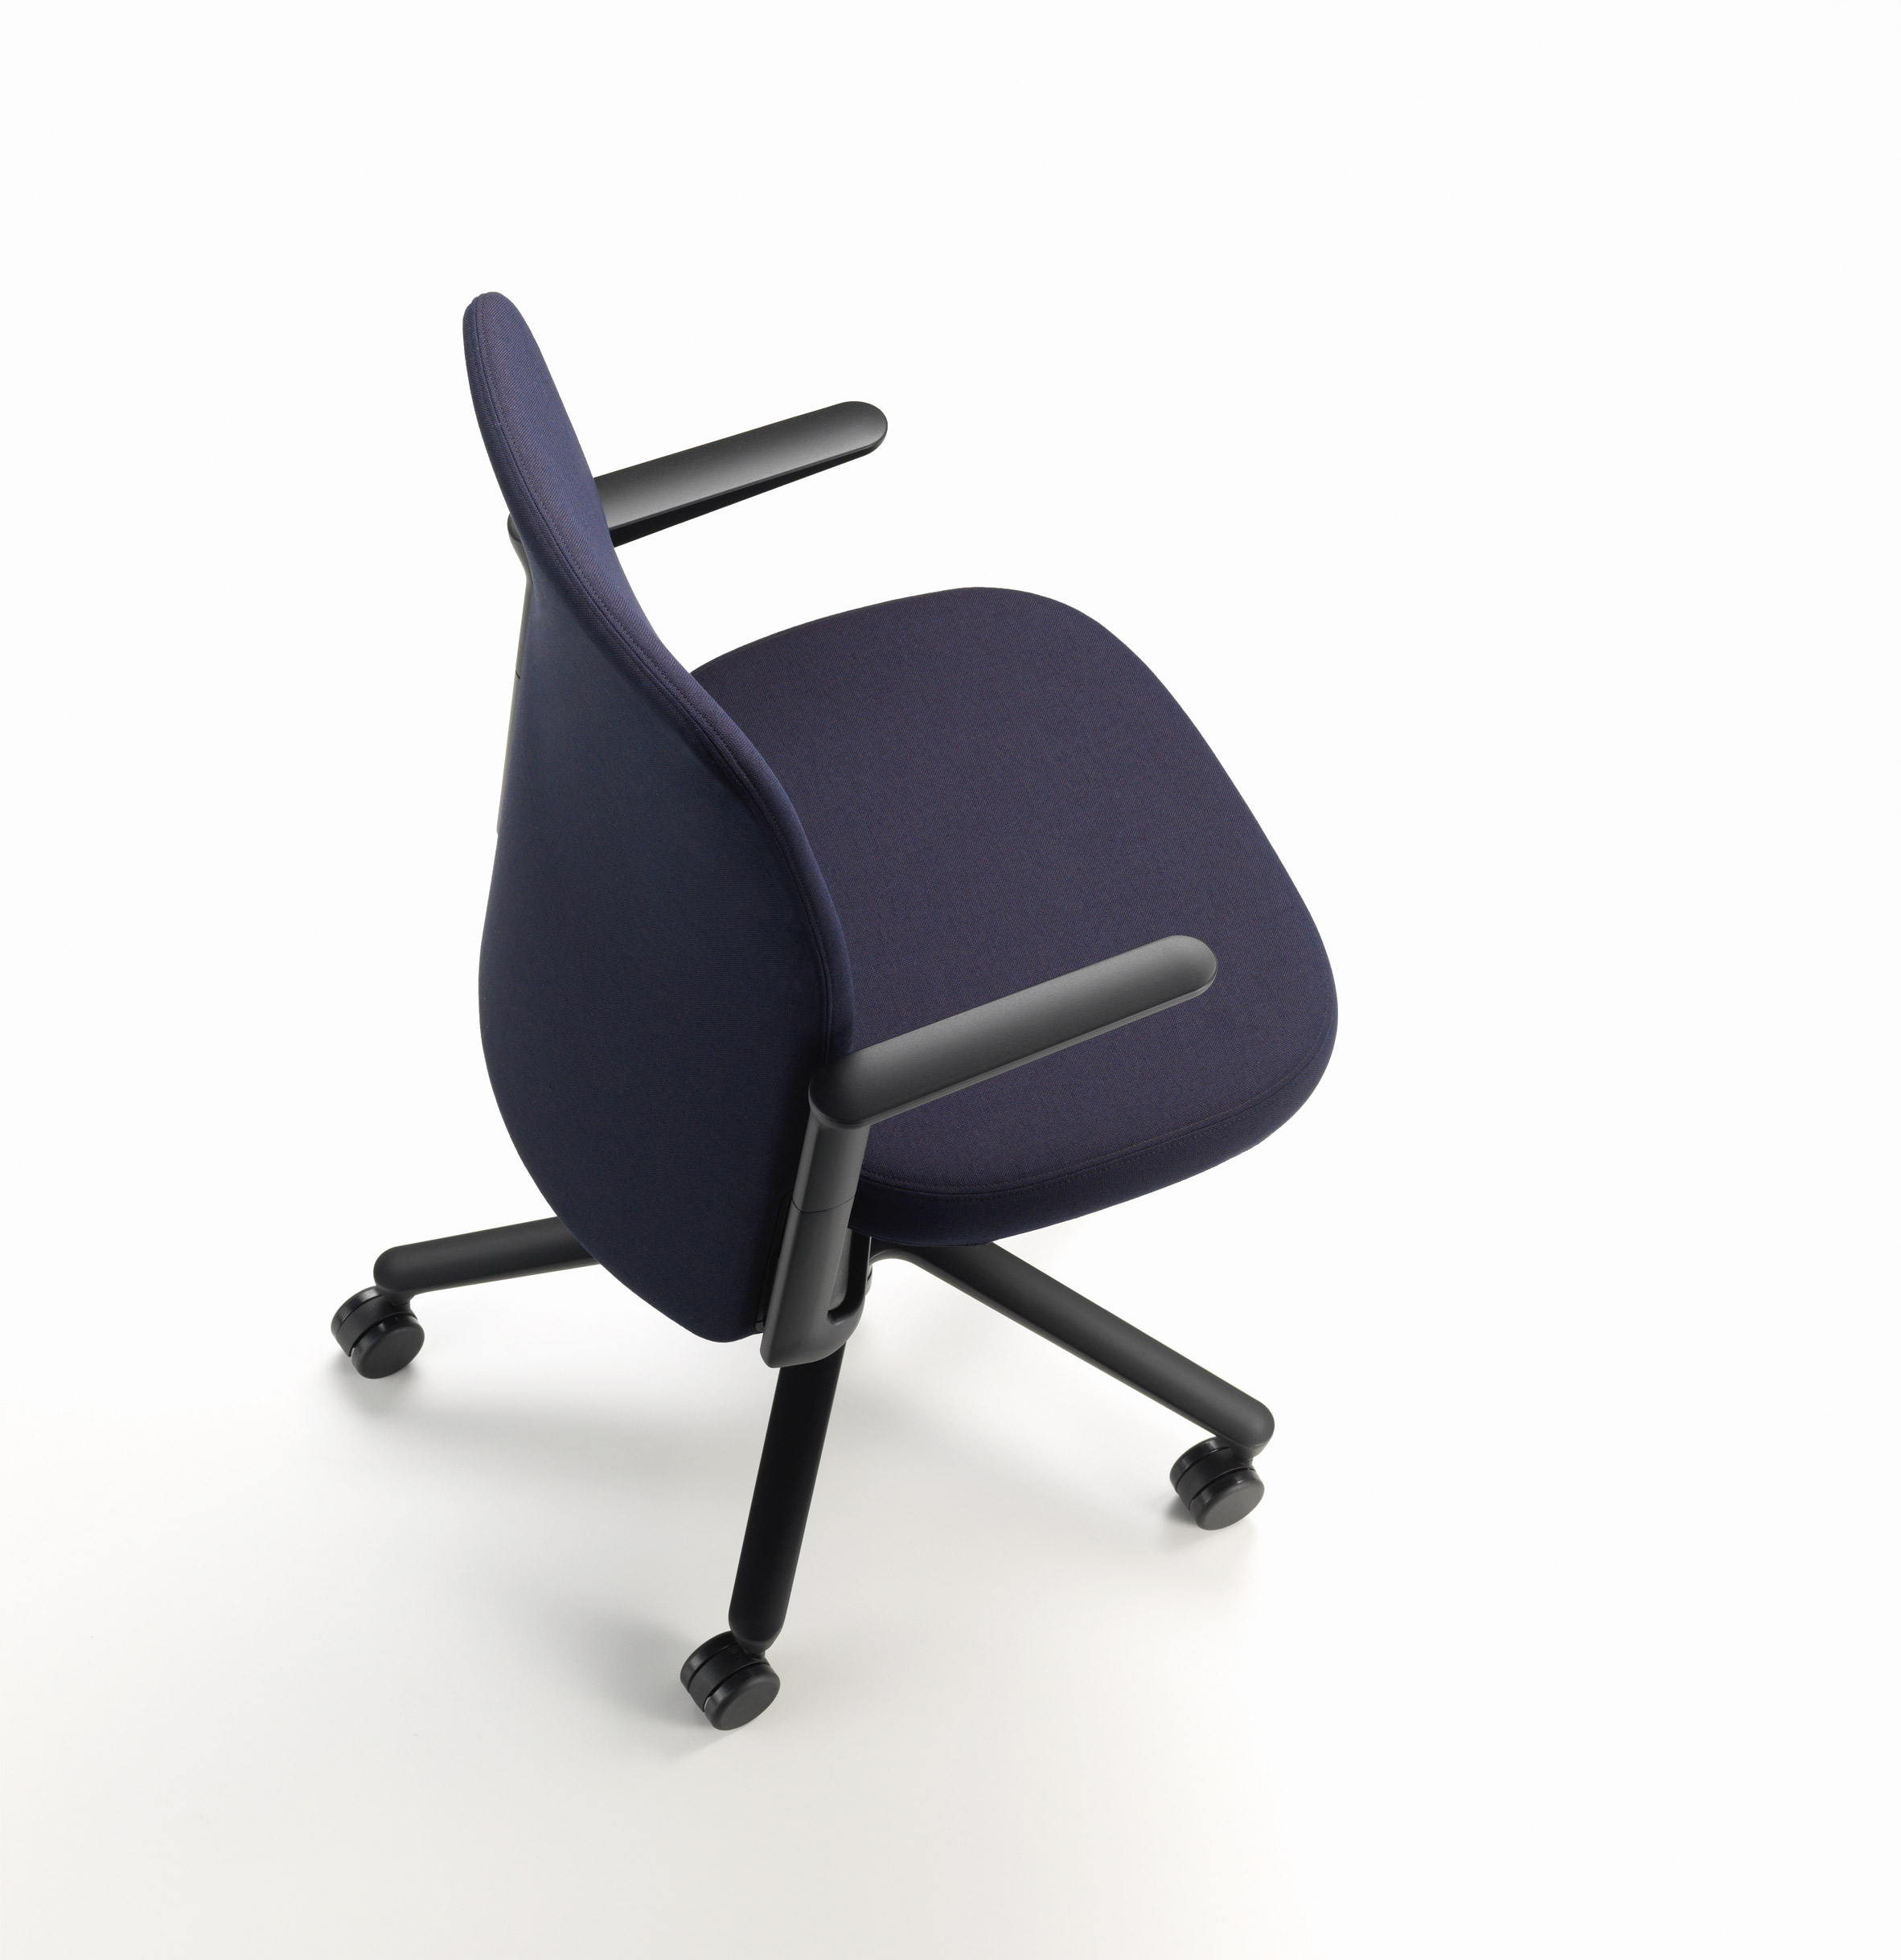 Barber and Osgerby design first office chair for Vitra